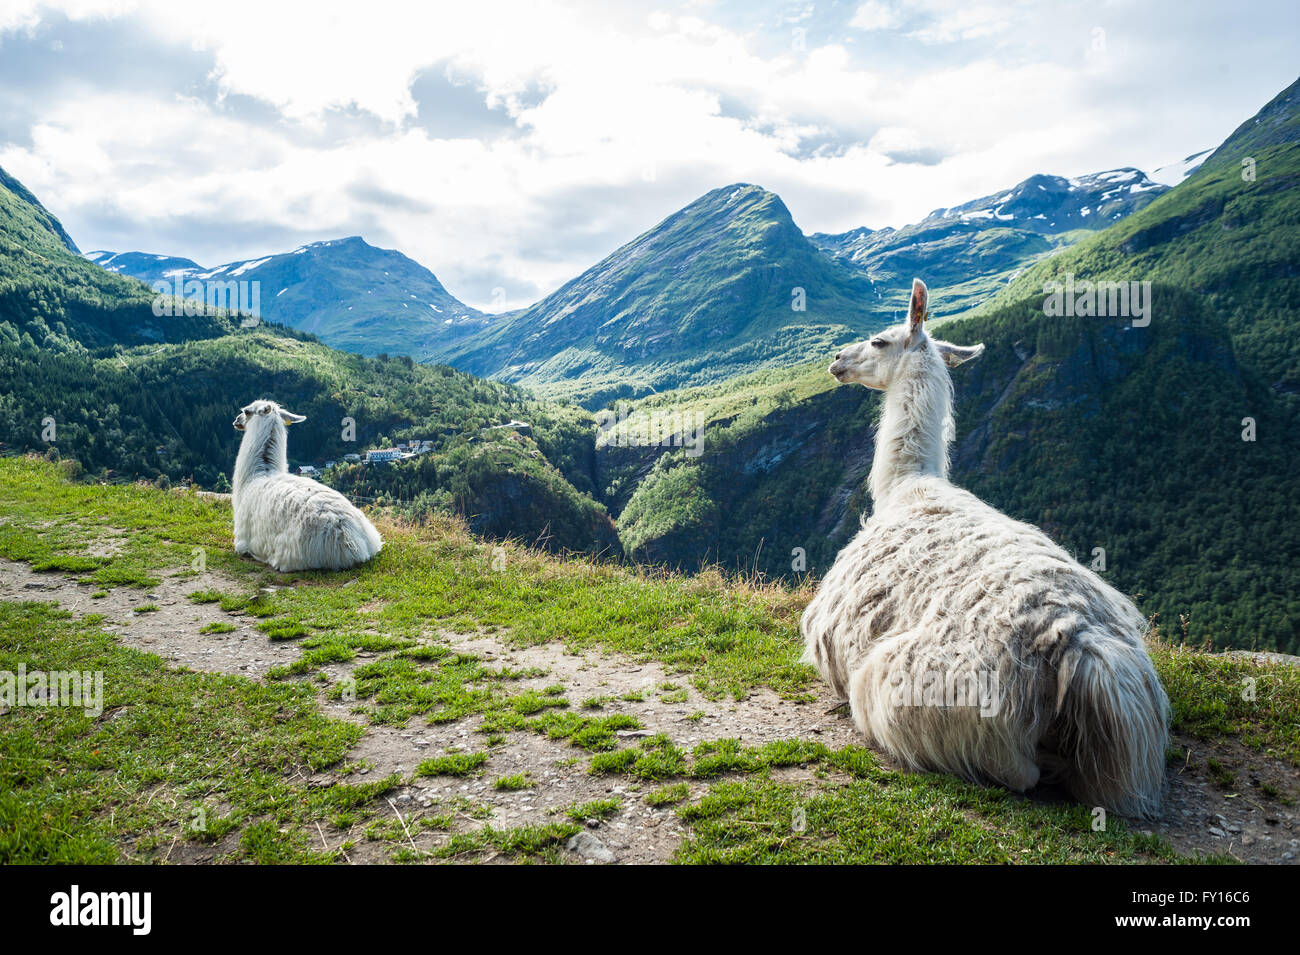 Two white llamas sitting down on a small path with beautiful mountain landscape in the background - Stock Image